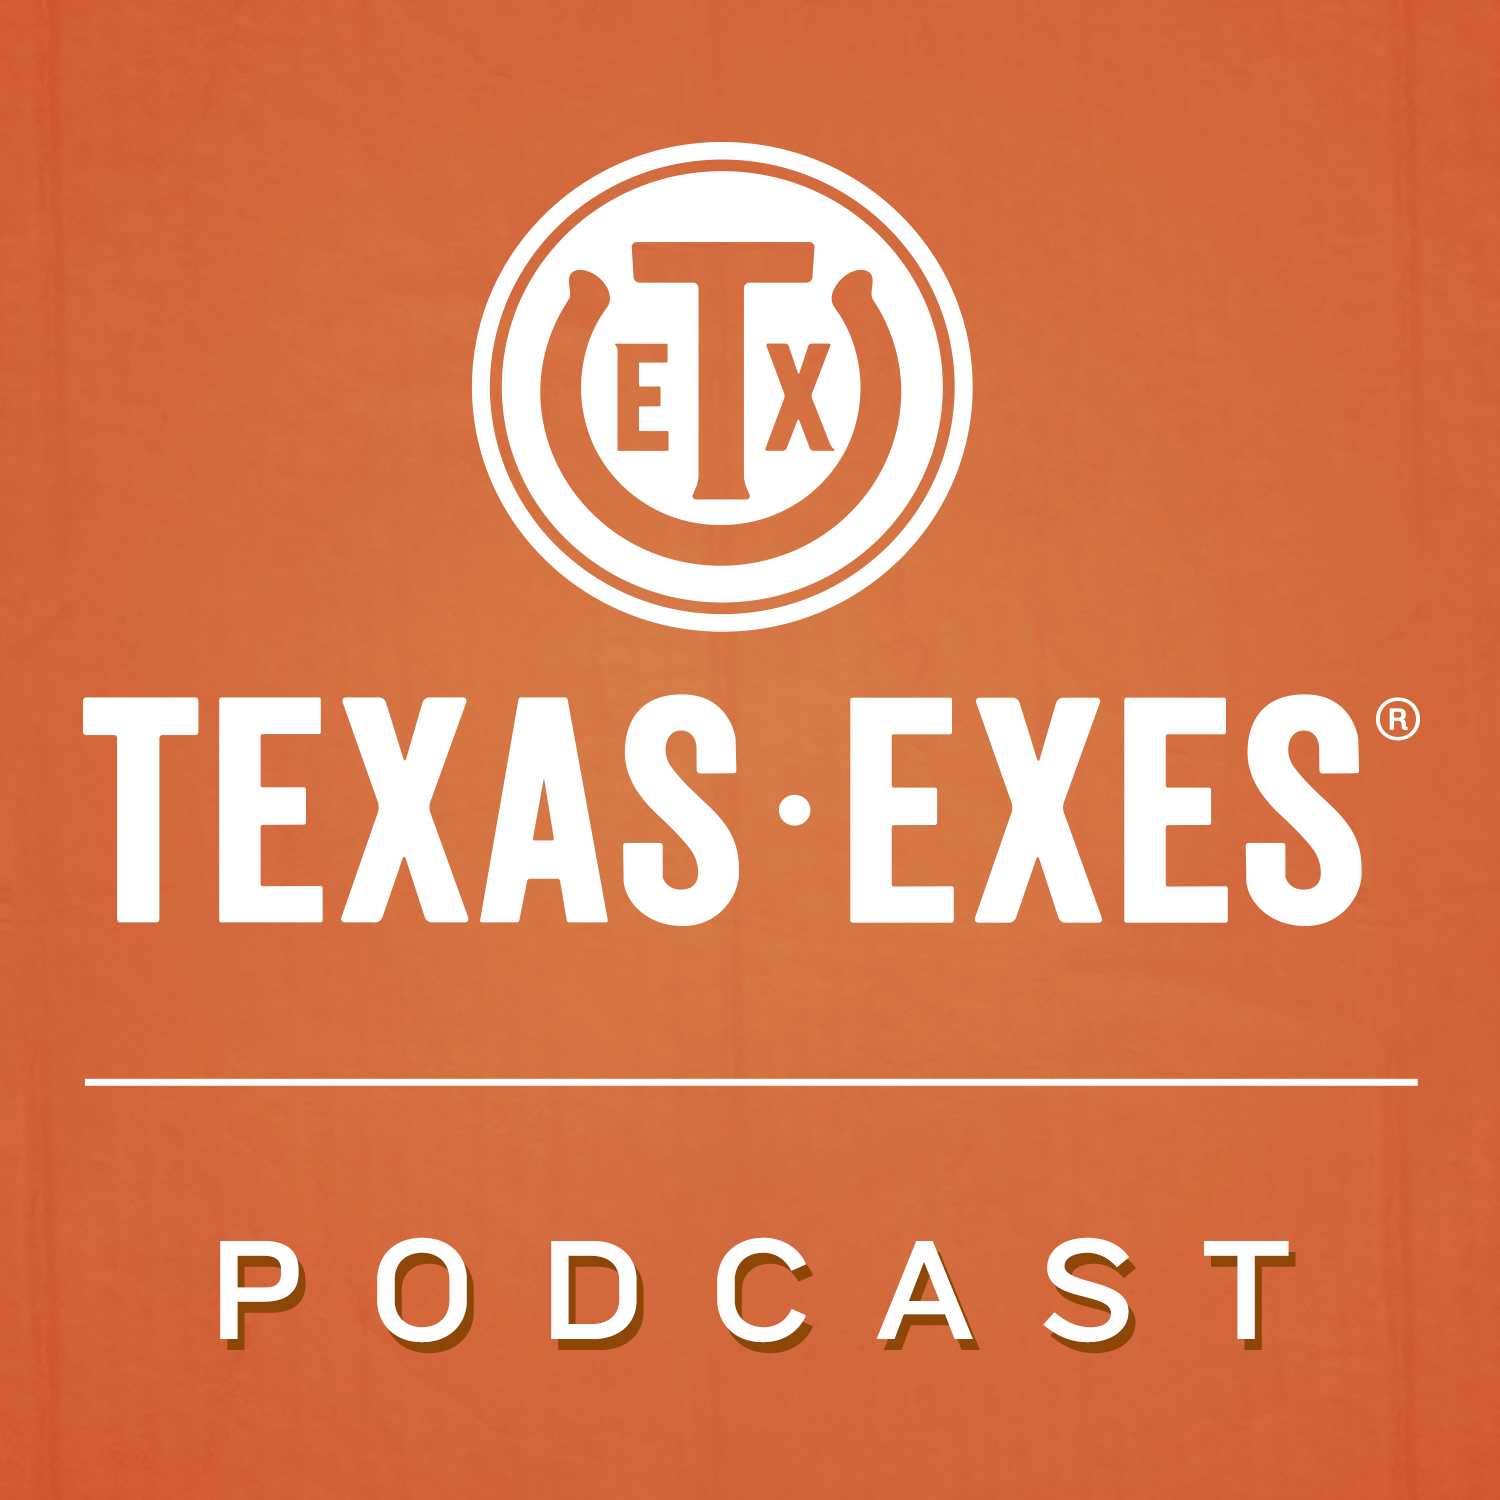 Texas Exes Podcast